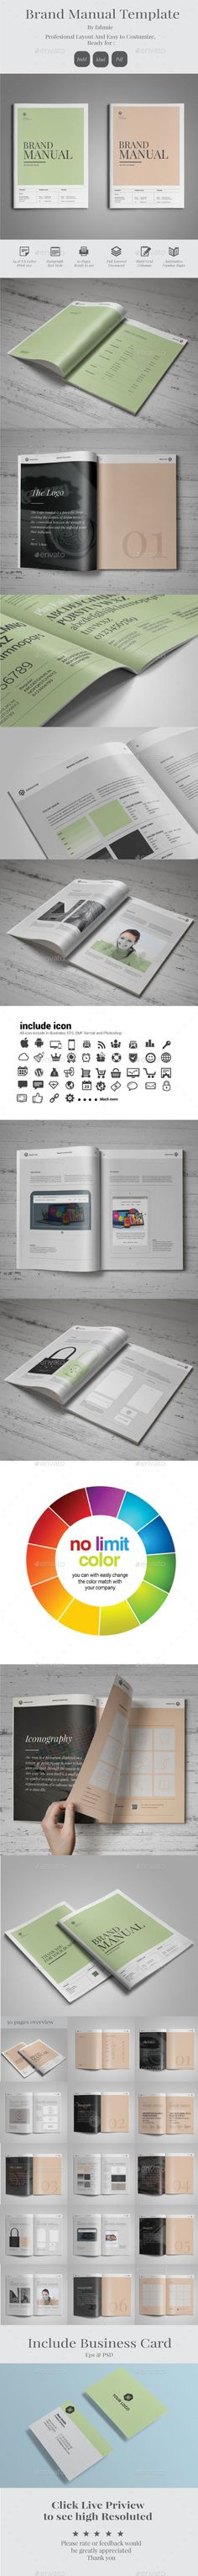 Brand Manual Guidelines #manual #guidelines #branding http://graphicriver.net/item/brand-manual/14040938